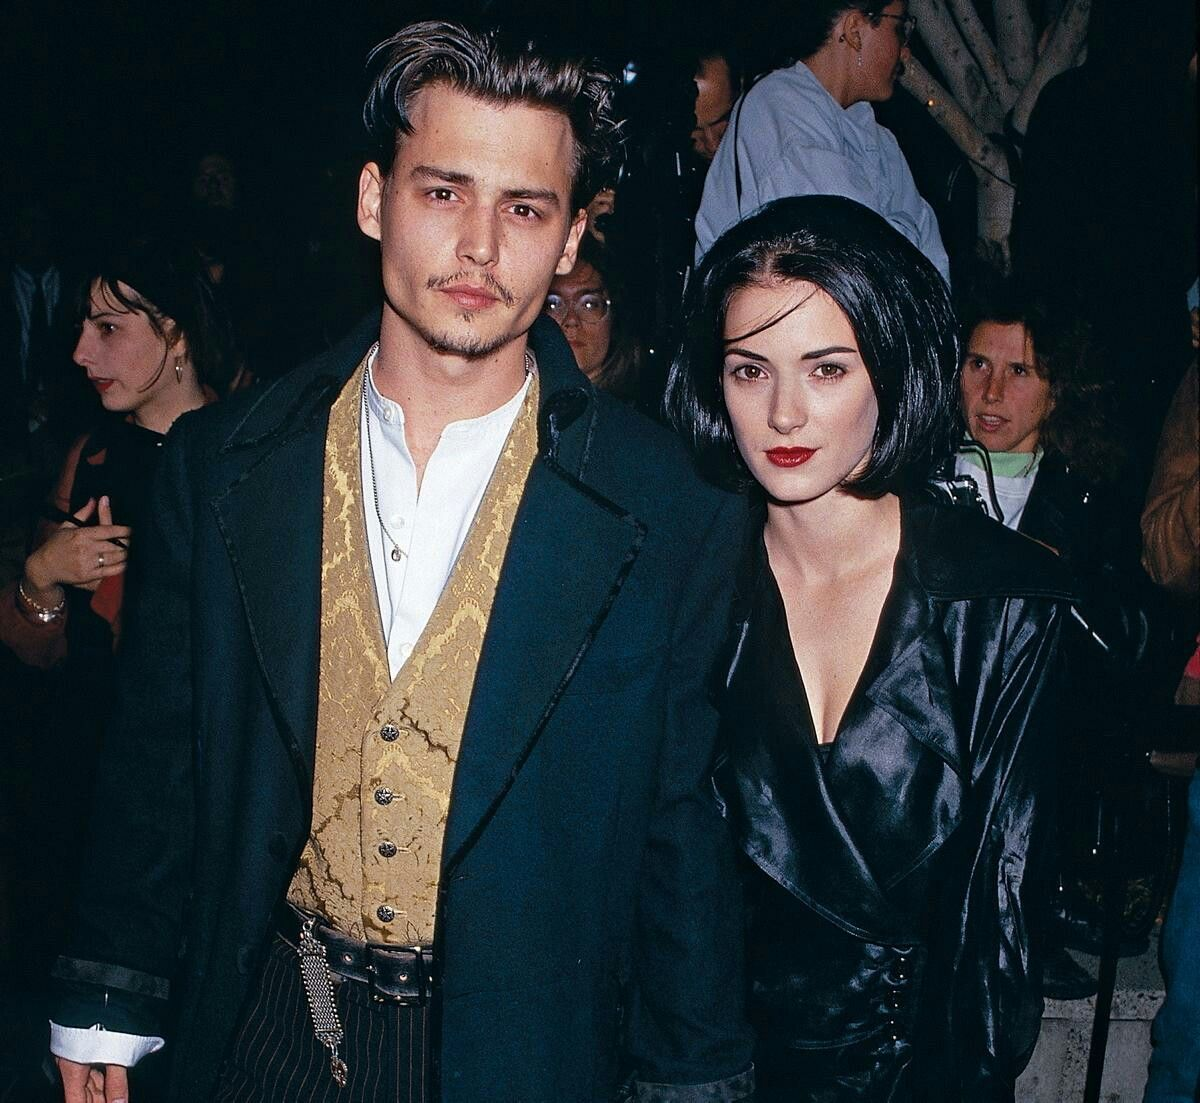 Winona Ryder and Johnny Depp were Hollywood sweethearts in the early 90s.